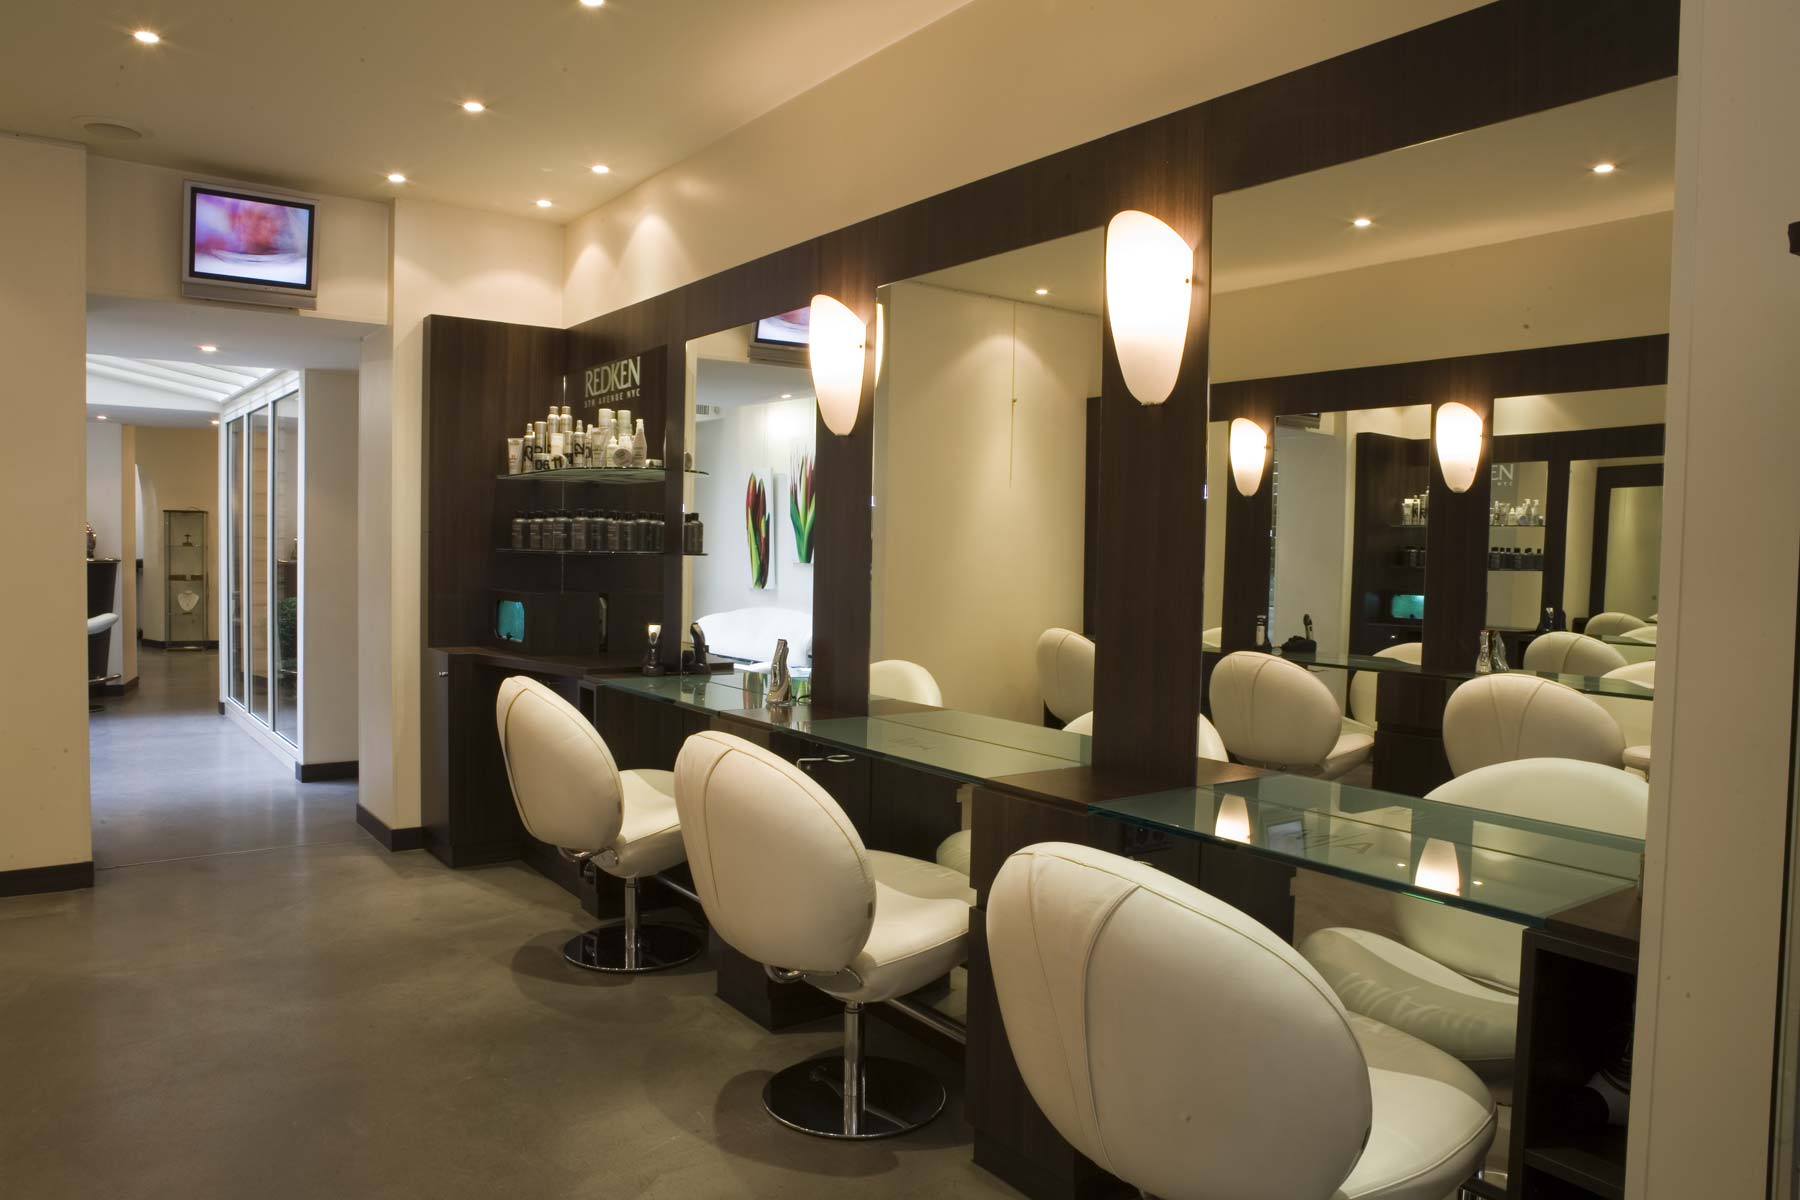 Coiffure salon coiffure institut beaut relooking paris for Image de salon